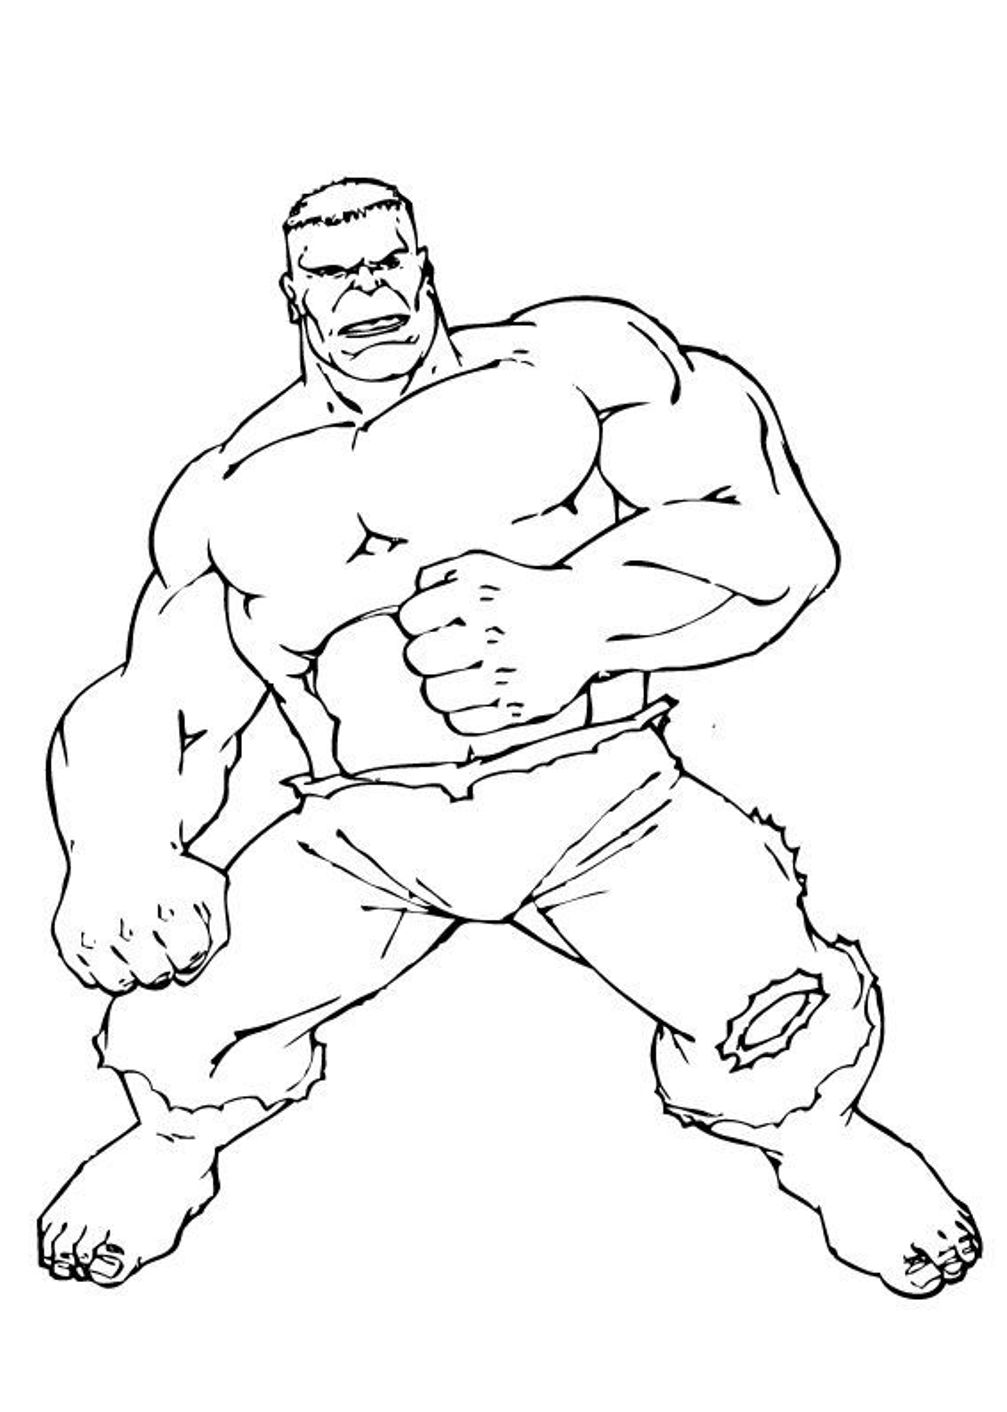 1007x1412 Hulk Cartoon Coloring Pages Download And Print For Free